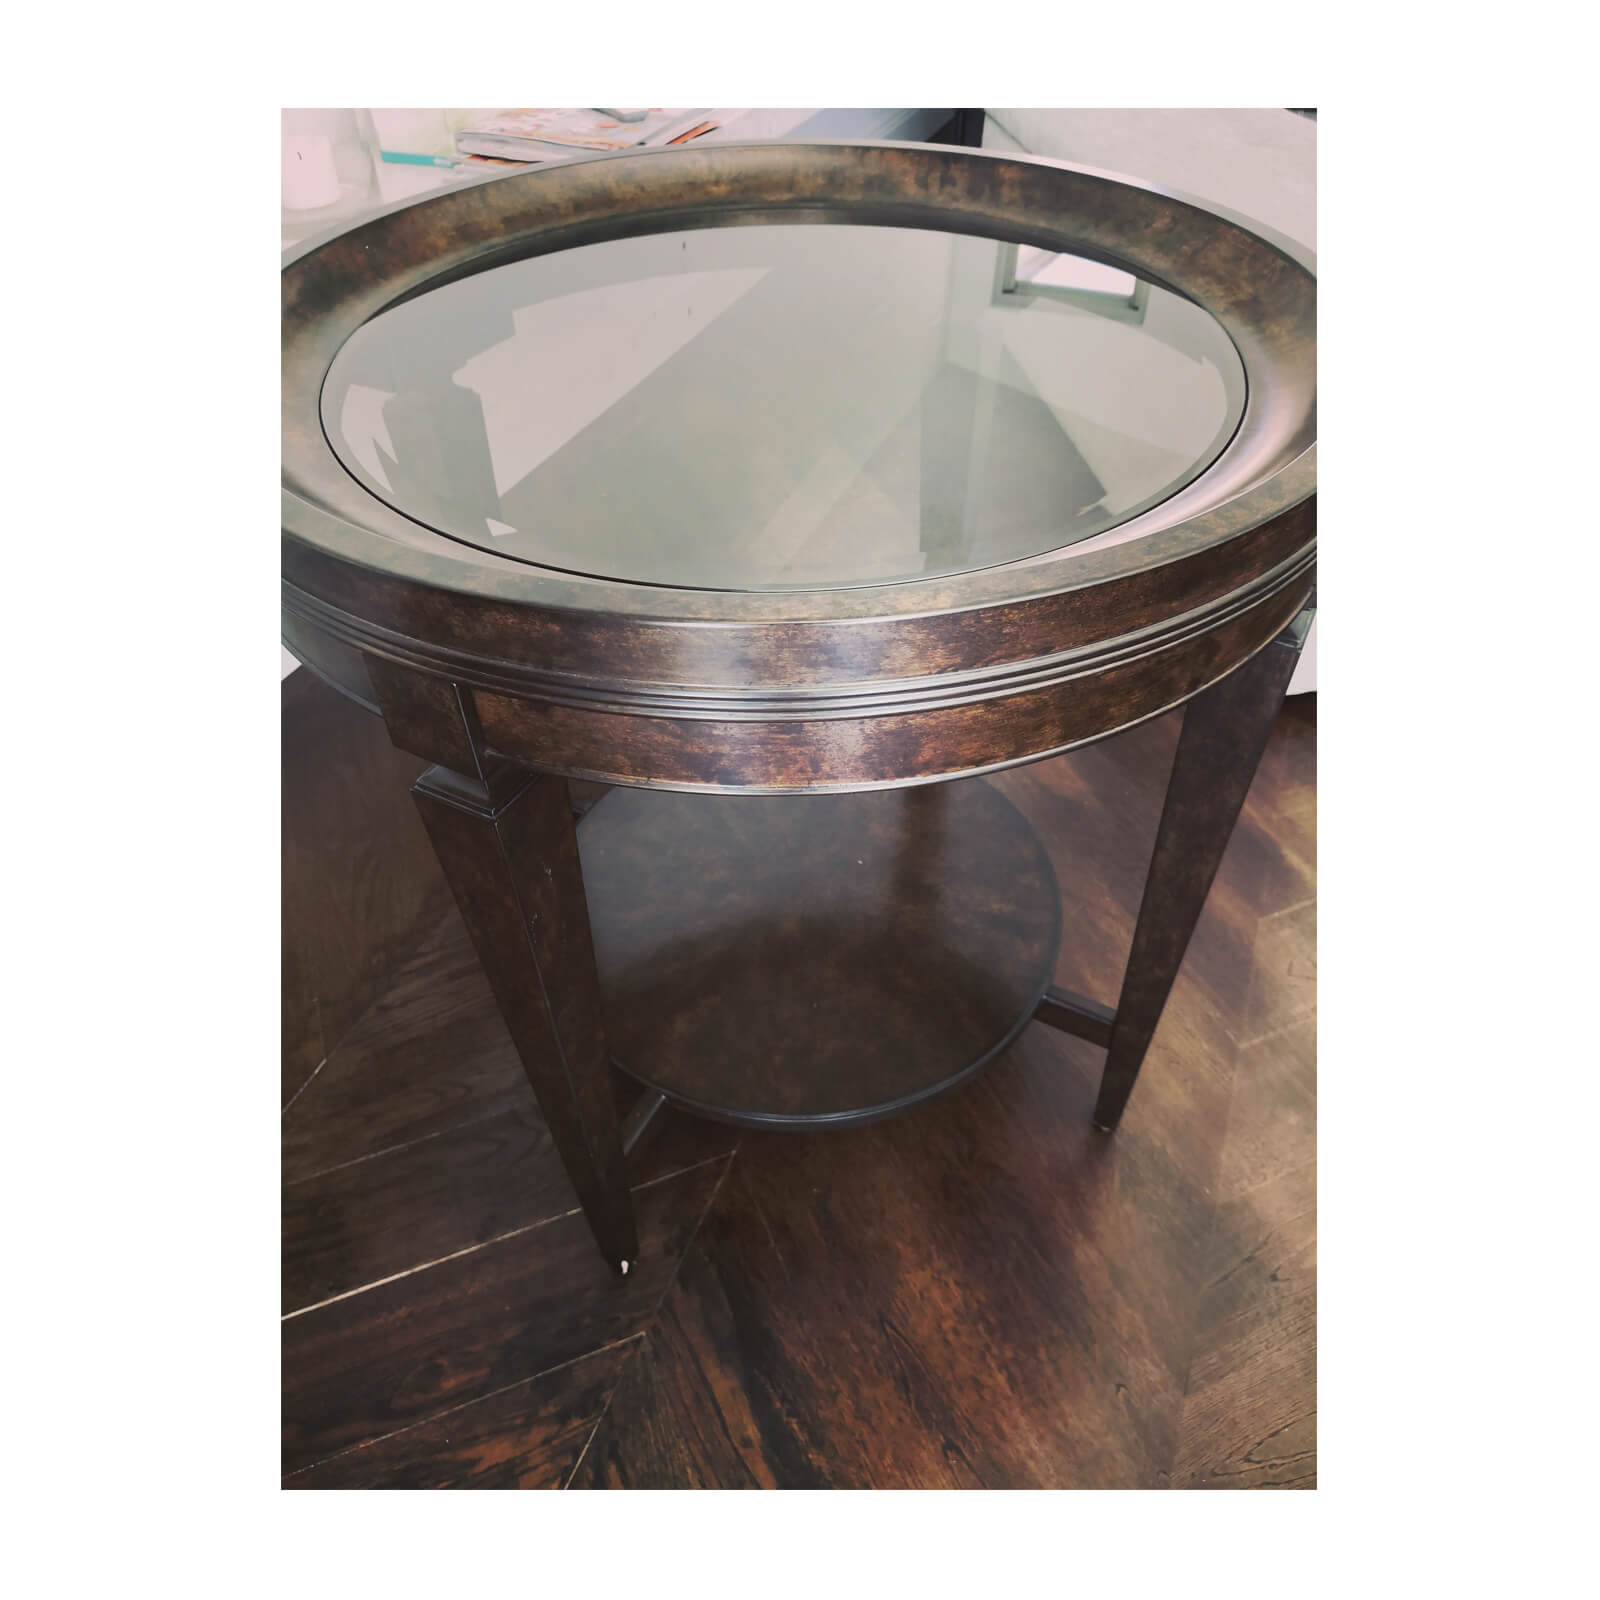 Max Sparrow Round side table with glass top